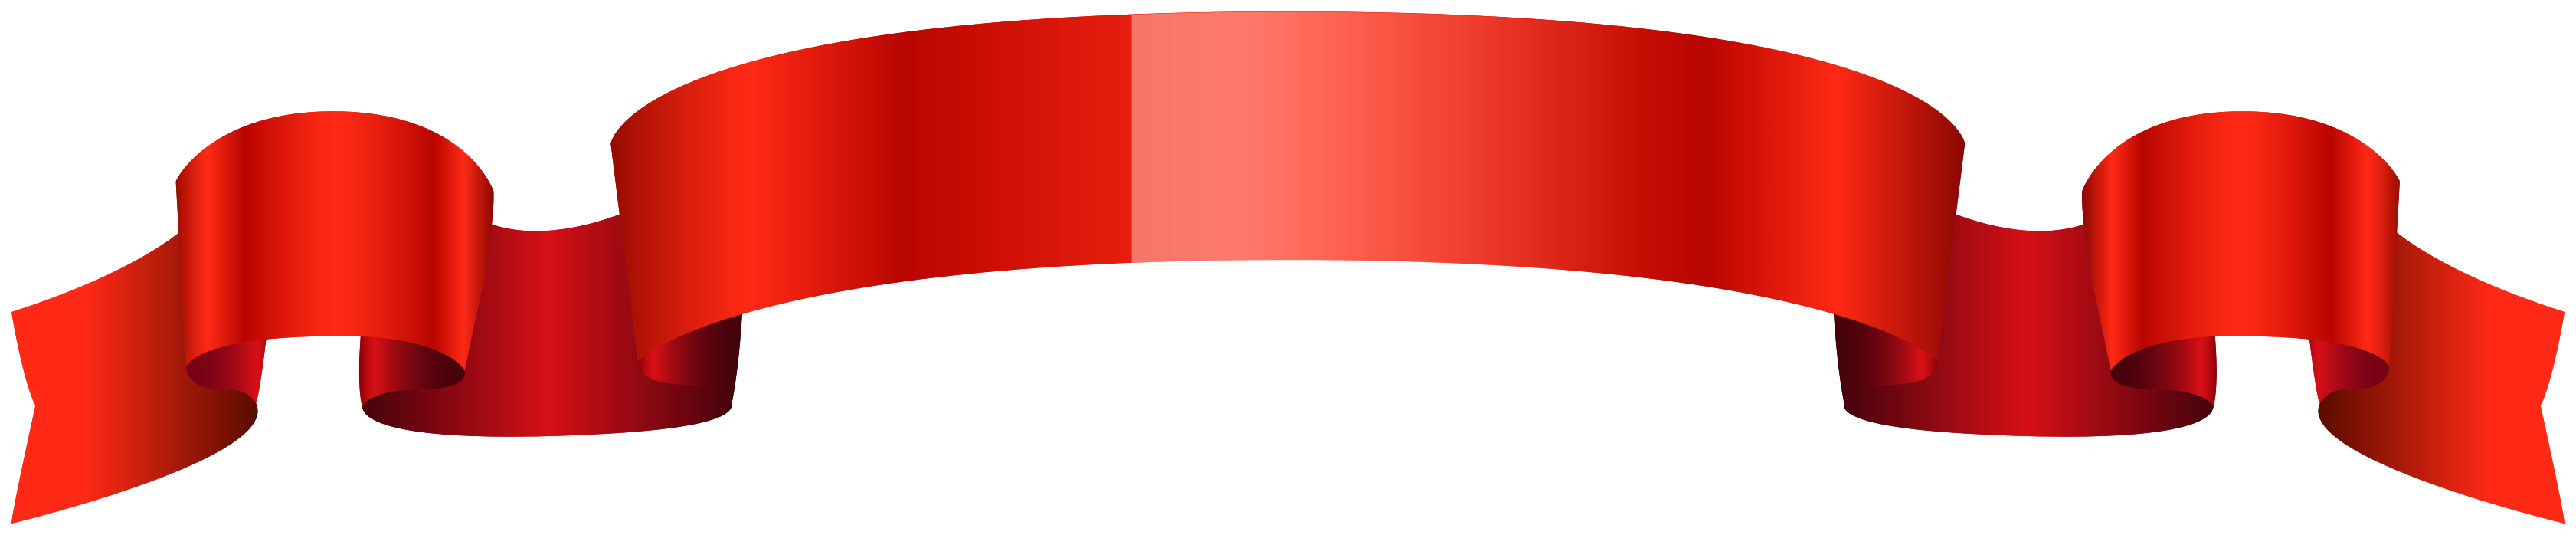 rotes glänzendes Band png